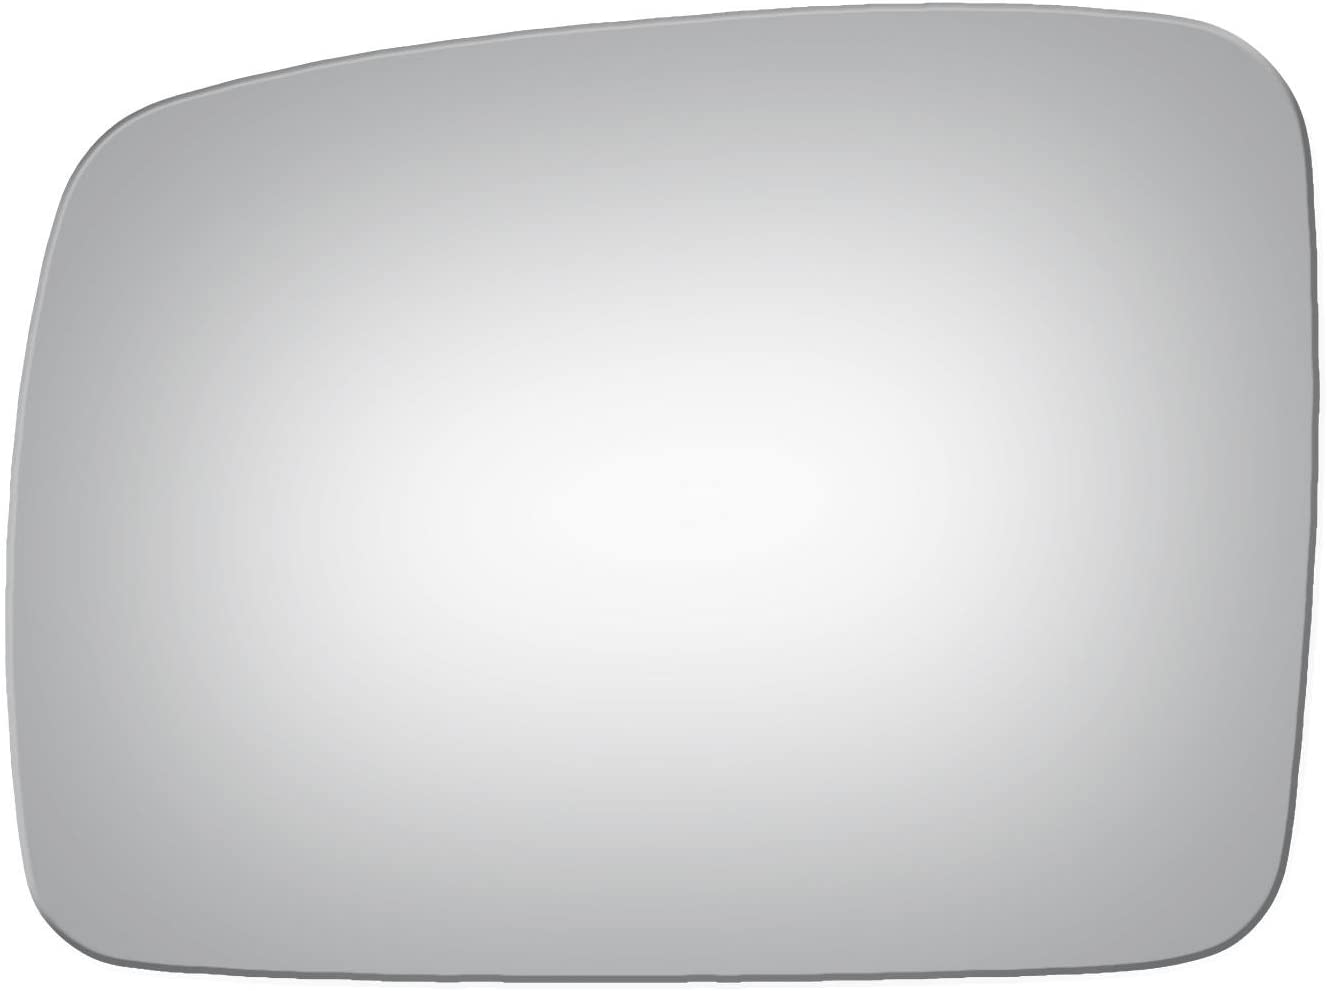 Right Driver side Flat Wing door mirror glass for Range Rover Sport 05-09 heat